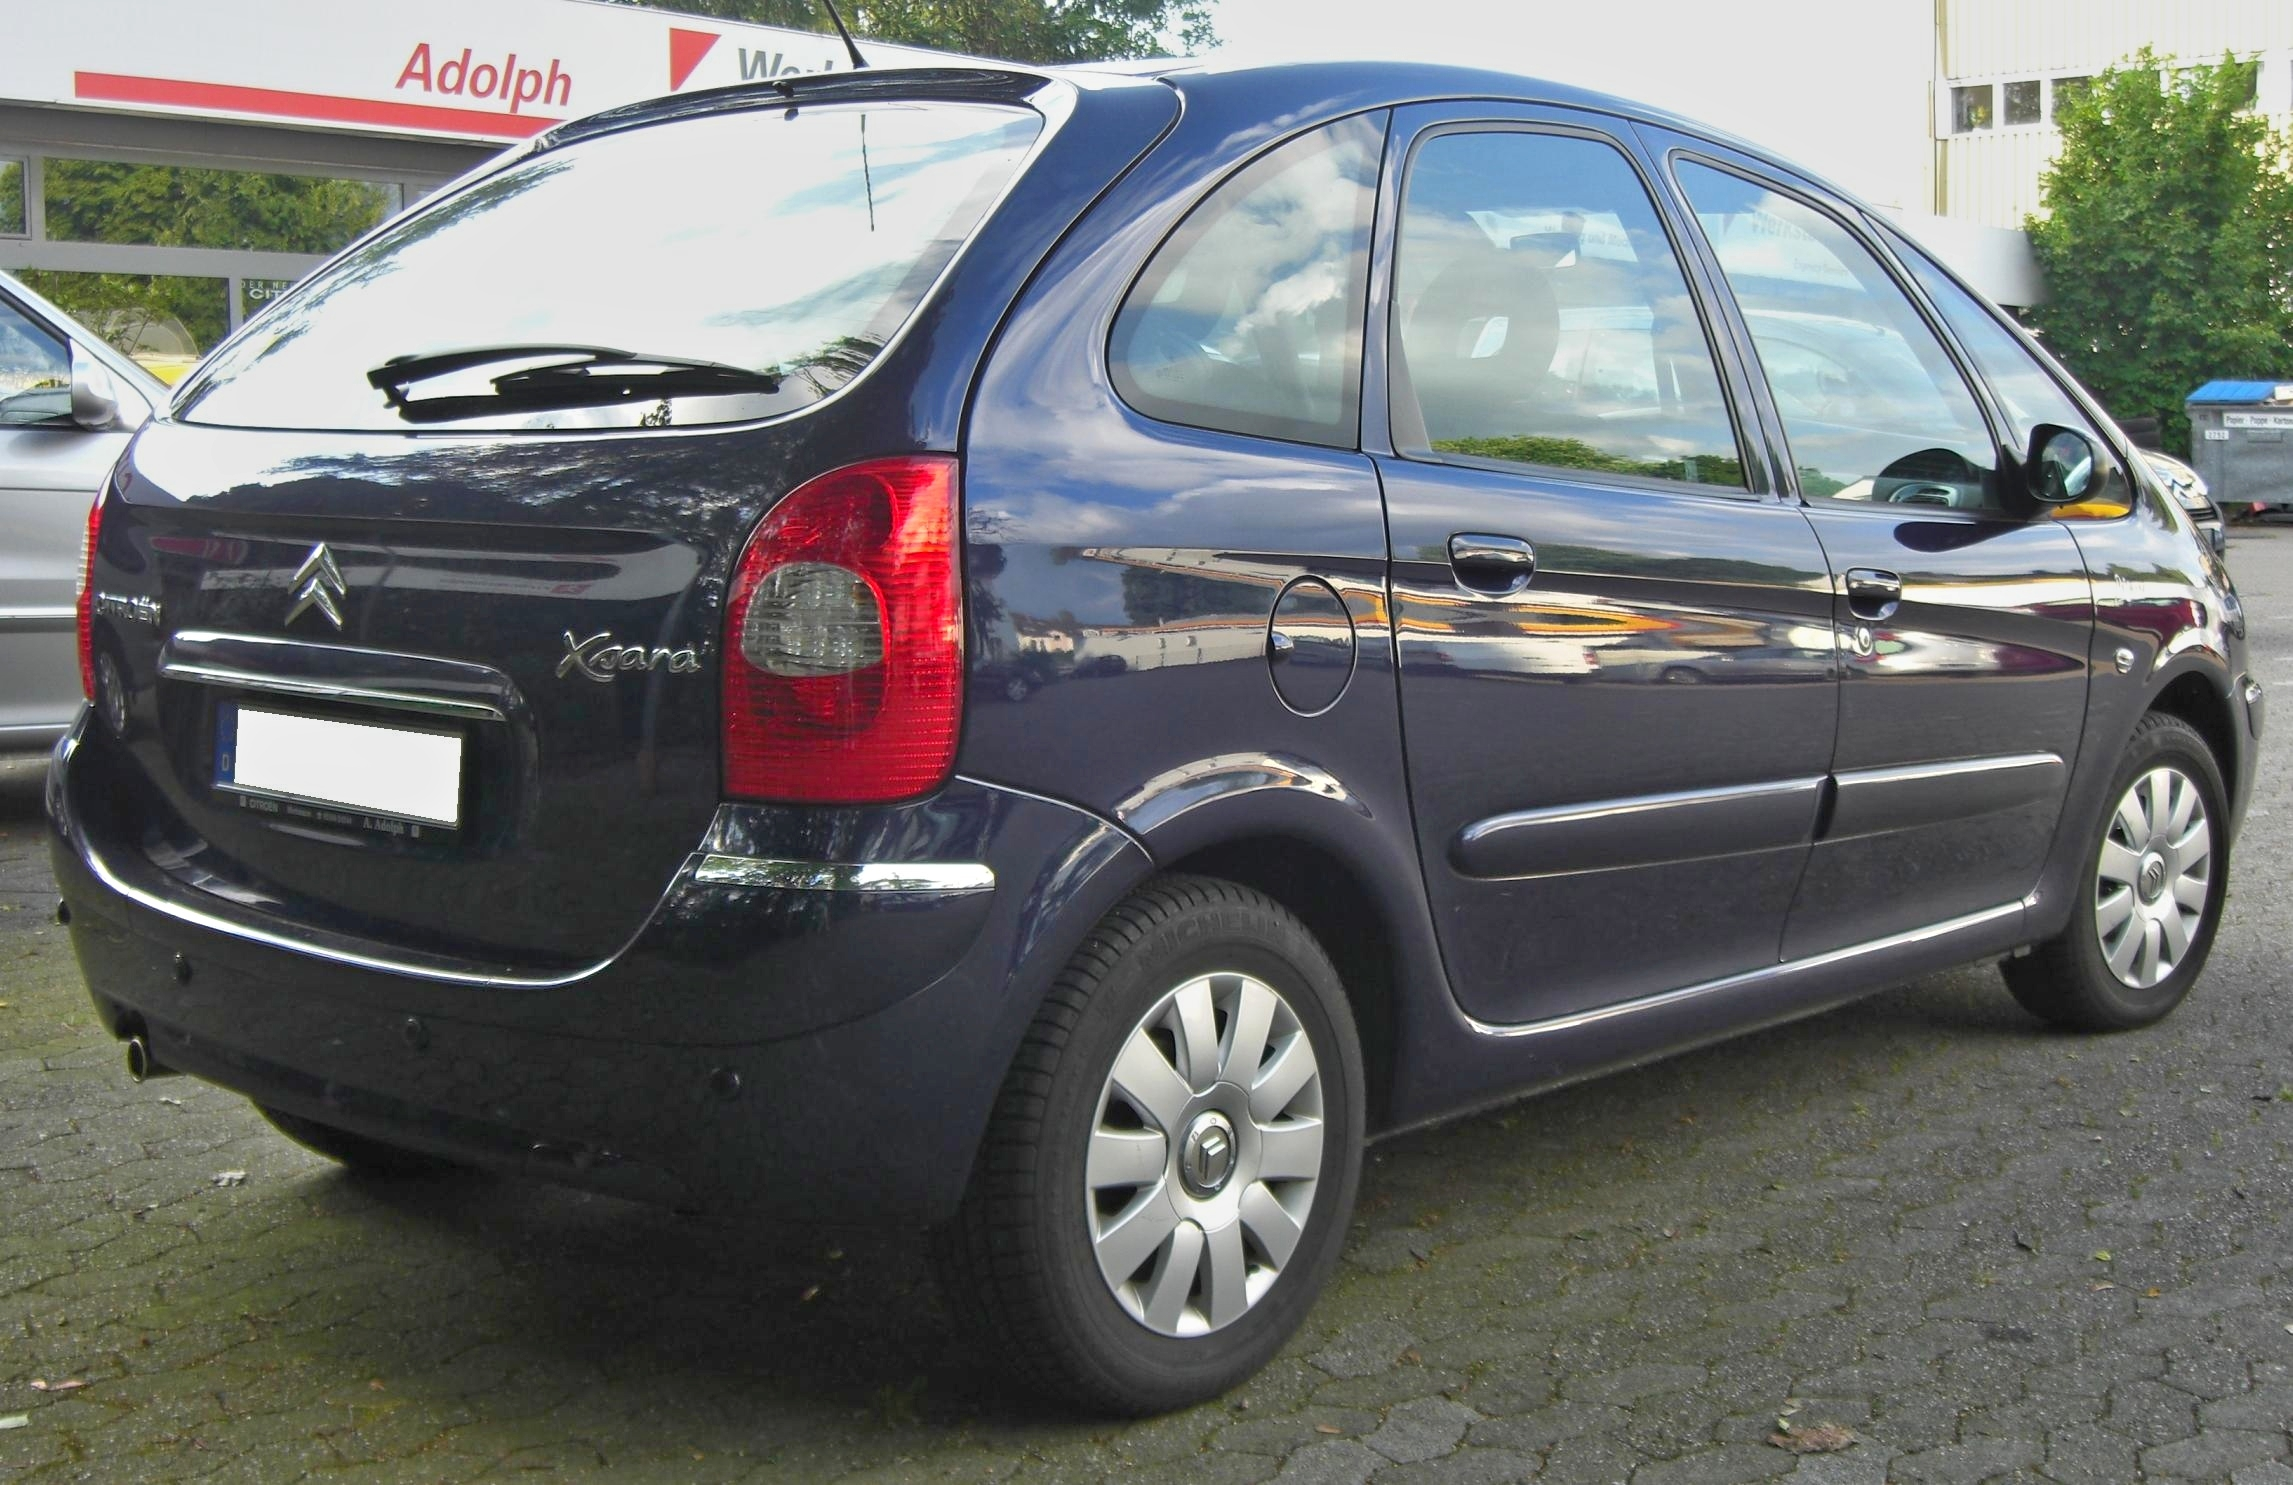 Citroen Xsara Picasso http://it.wikipedia.org/wiki/File:Citroen_Xsara_Picasso_Facelift_rear.jpg